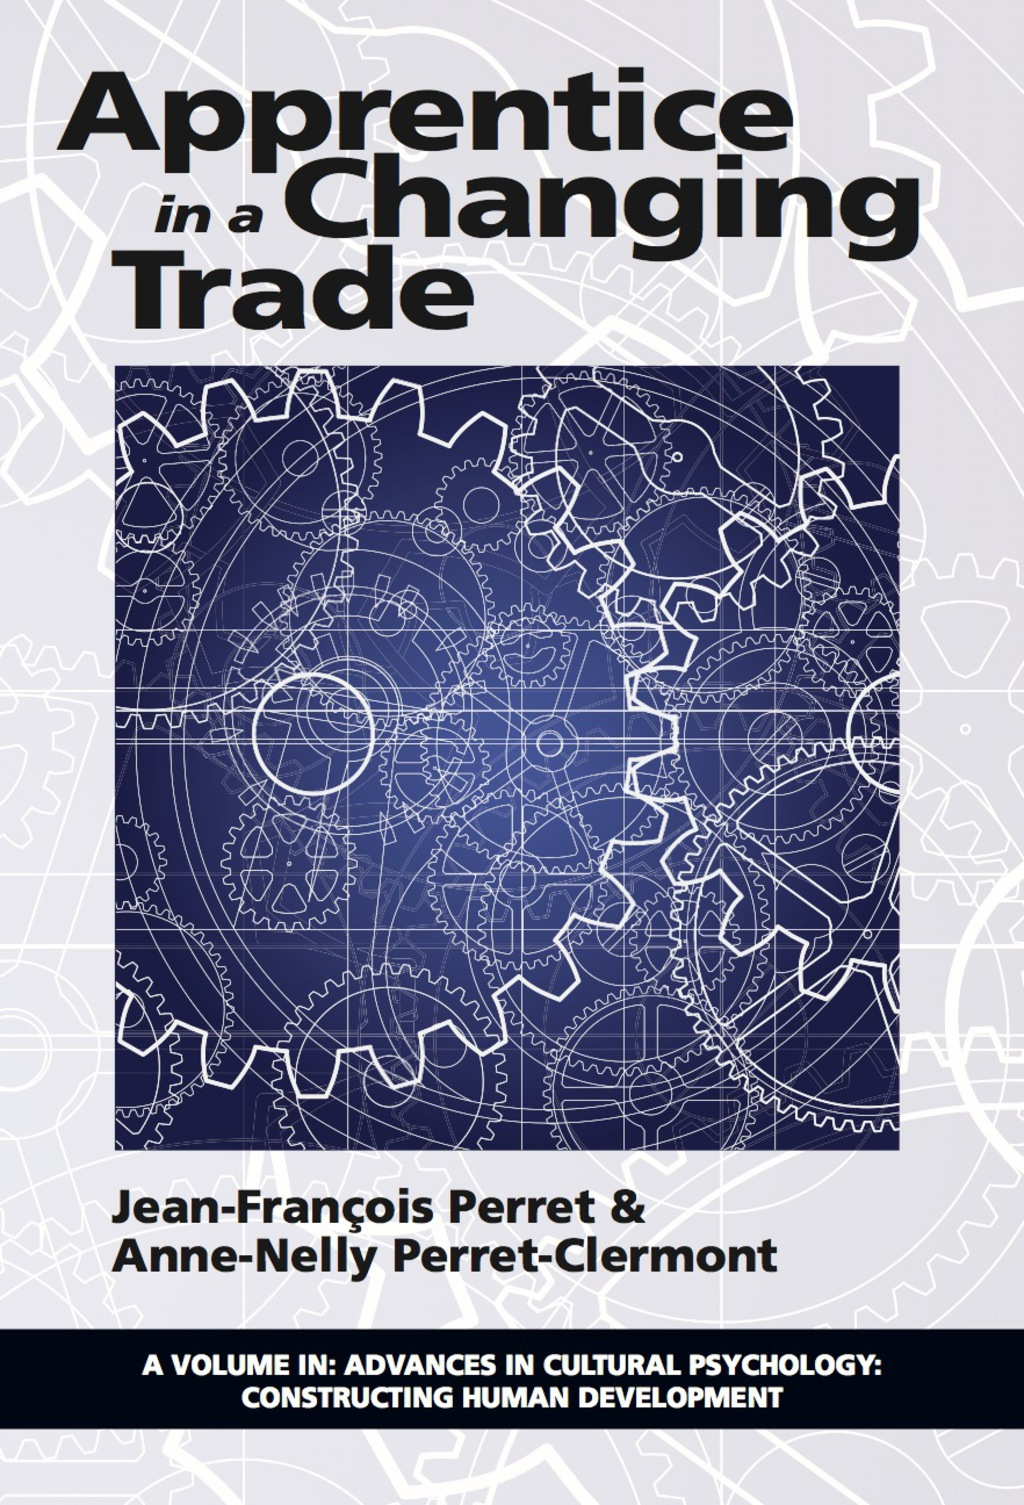 By Jean-François Perret,  Anne-Nelly Perret-Clermont,  Danièle Golay Schilter,  Claude Kaiser,  Luc-Olivier PRINTISBN: 9781617354113 E-TEXT ISBN: 9781617354137 Edition: 0